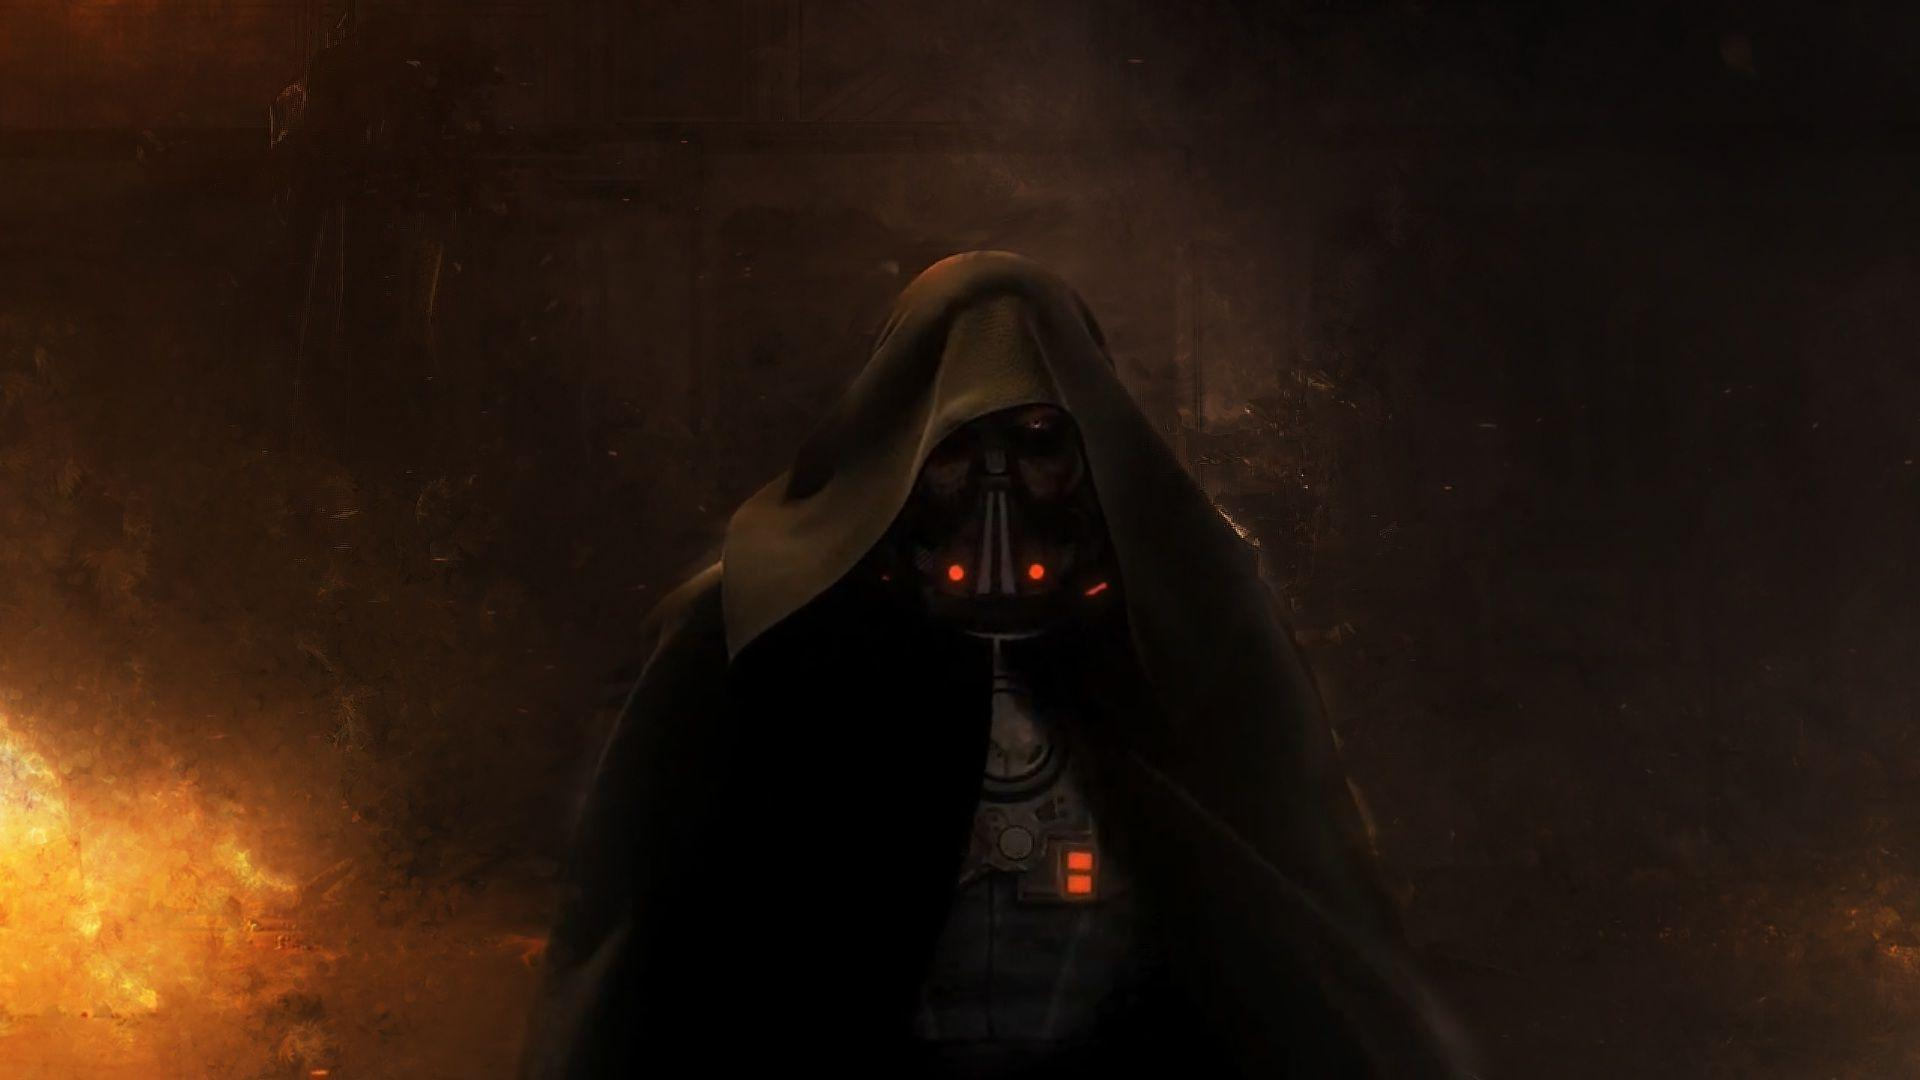 sith wallpaper 1080p star - photo #8